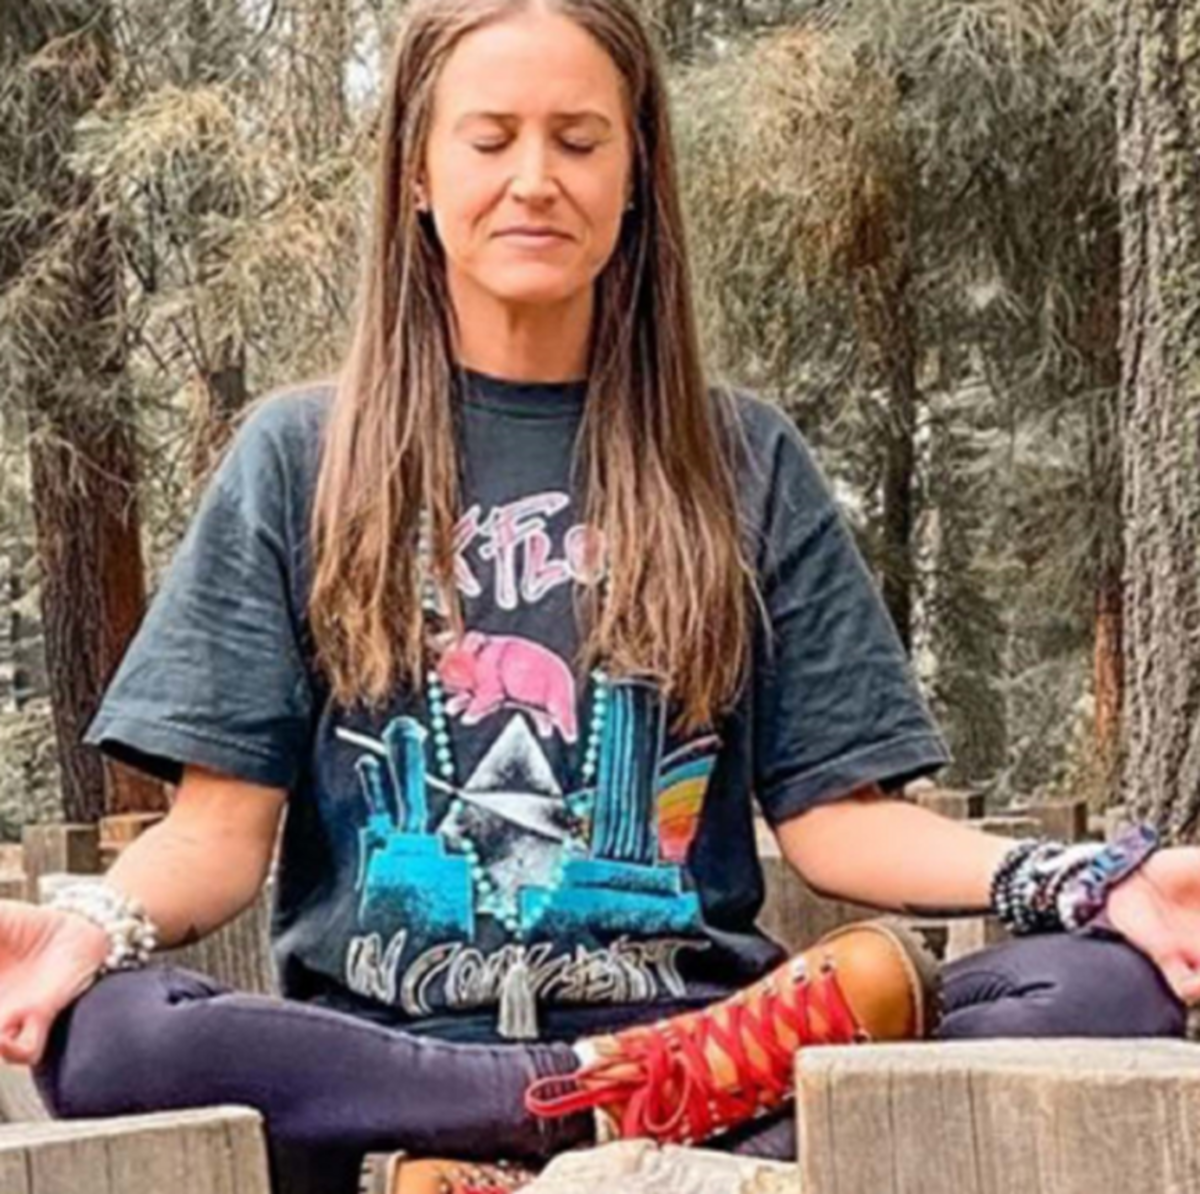 Holly Courtier, who vanished October 6, 2020, meditating in the woods during a previous hike.